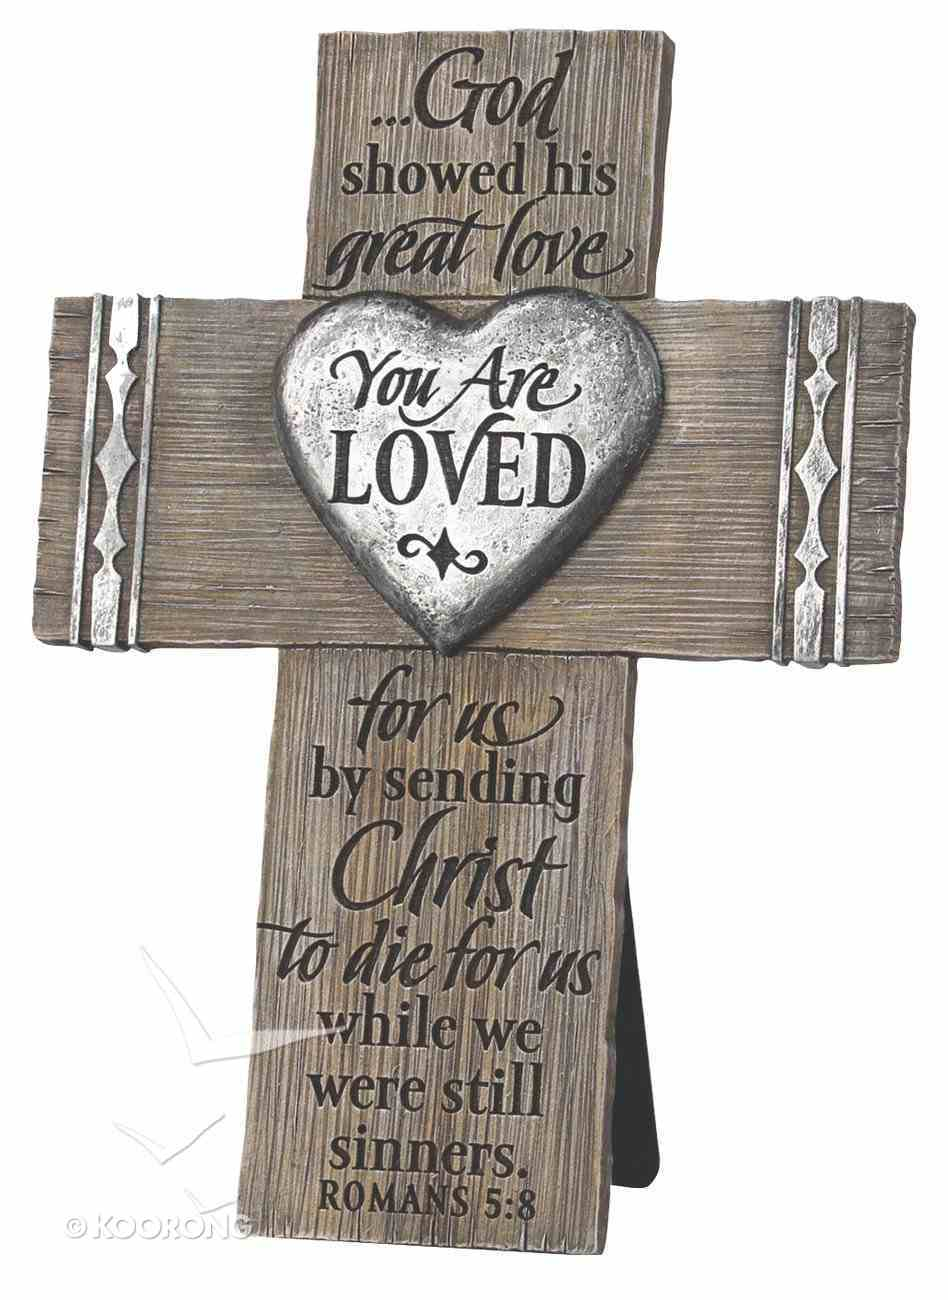 Cross Cast Stone: You Are Loved Power of the Cross Booklet Included (Romans 5:8) Homeware